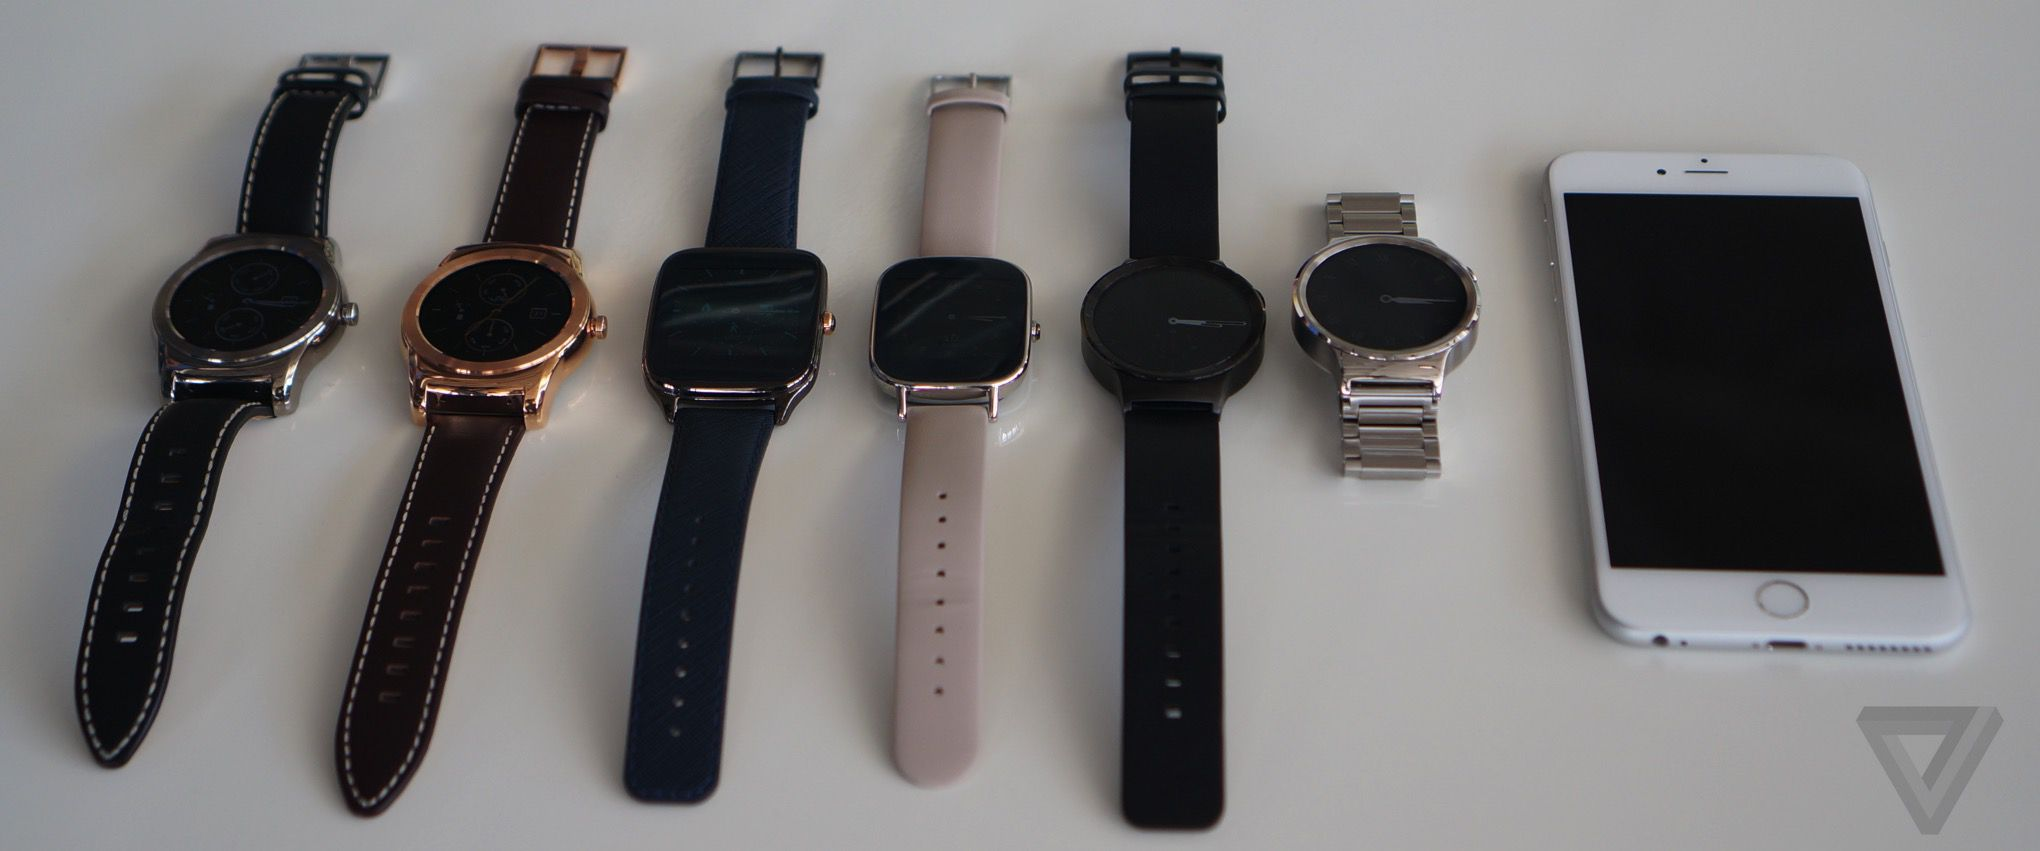 Android Wear smartwatches come to the iPhone | The Verge